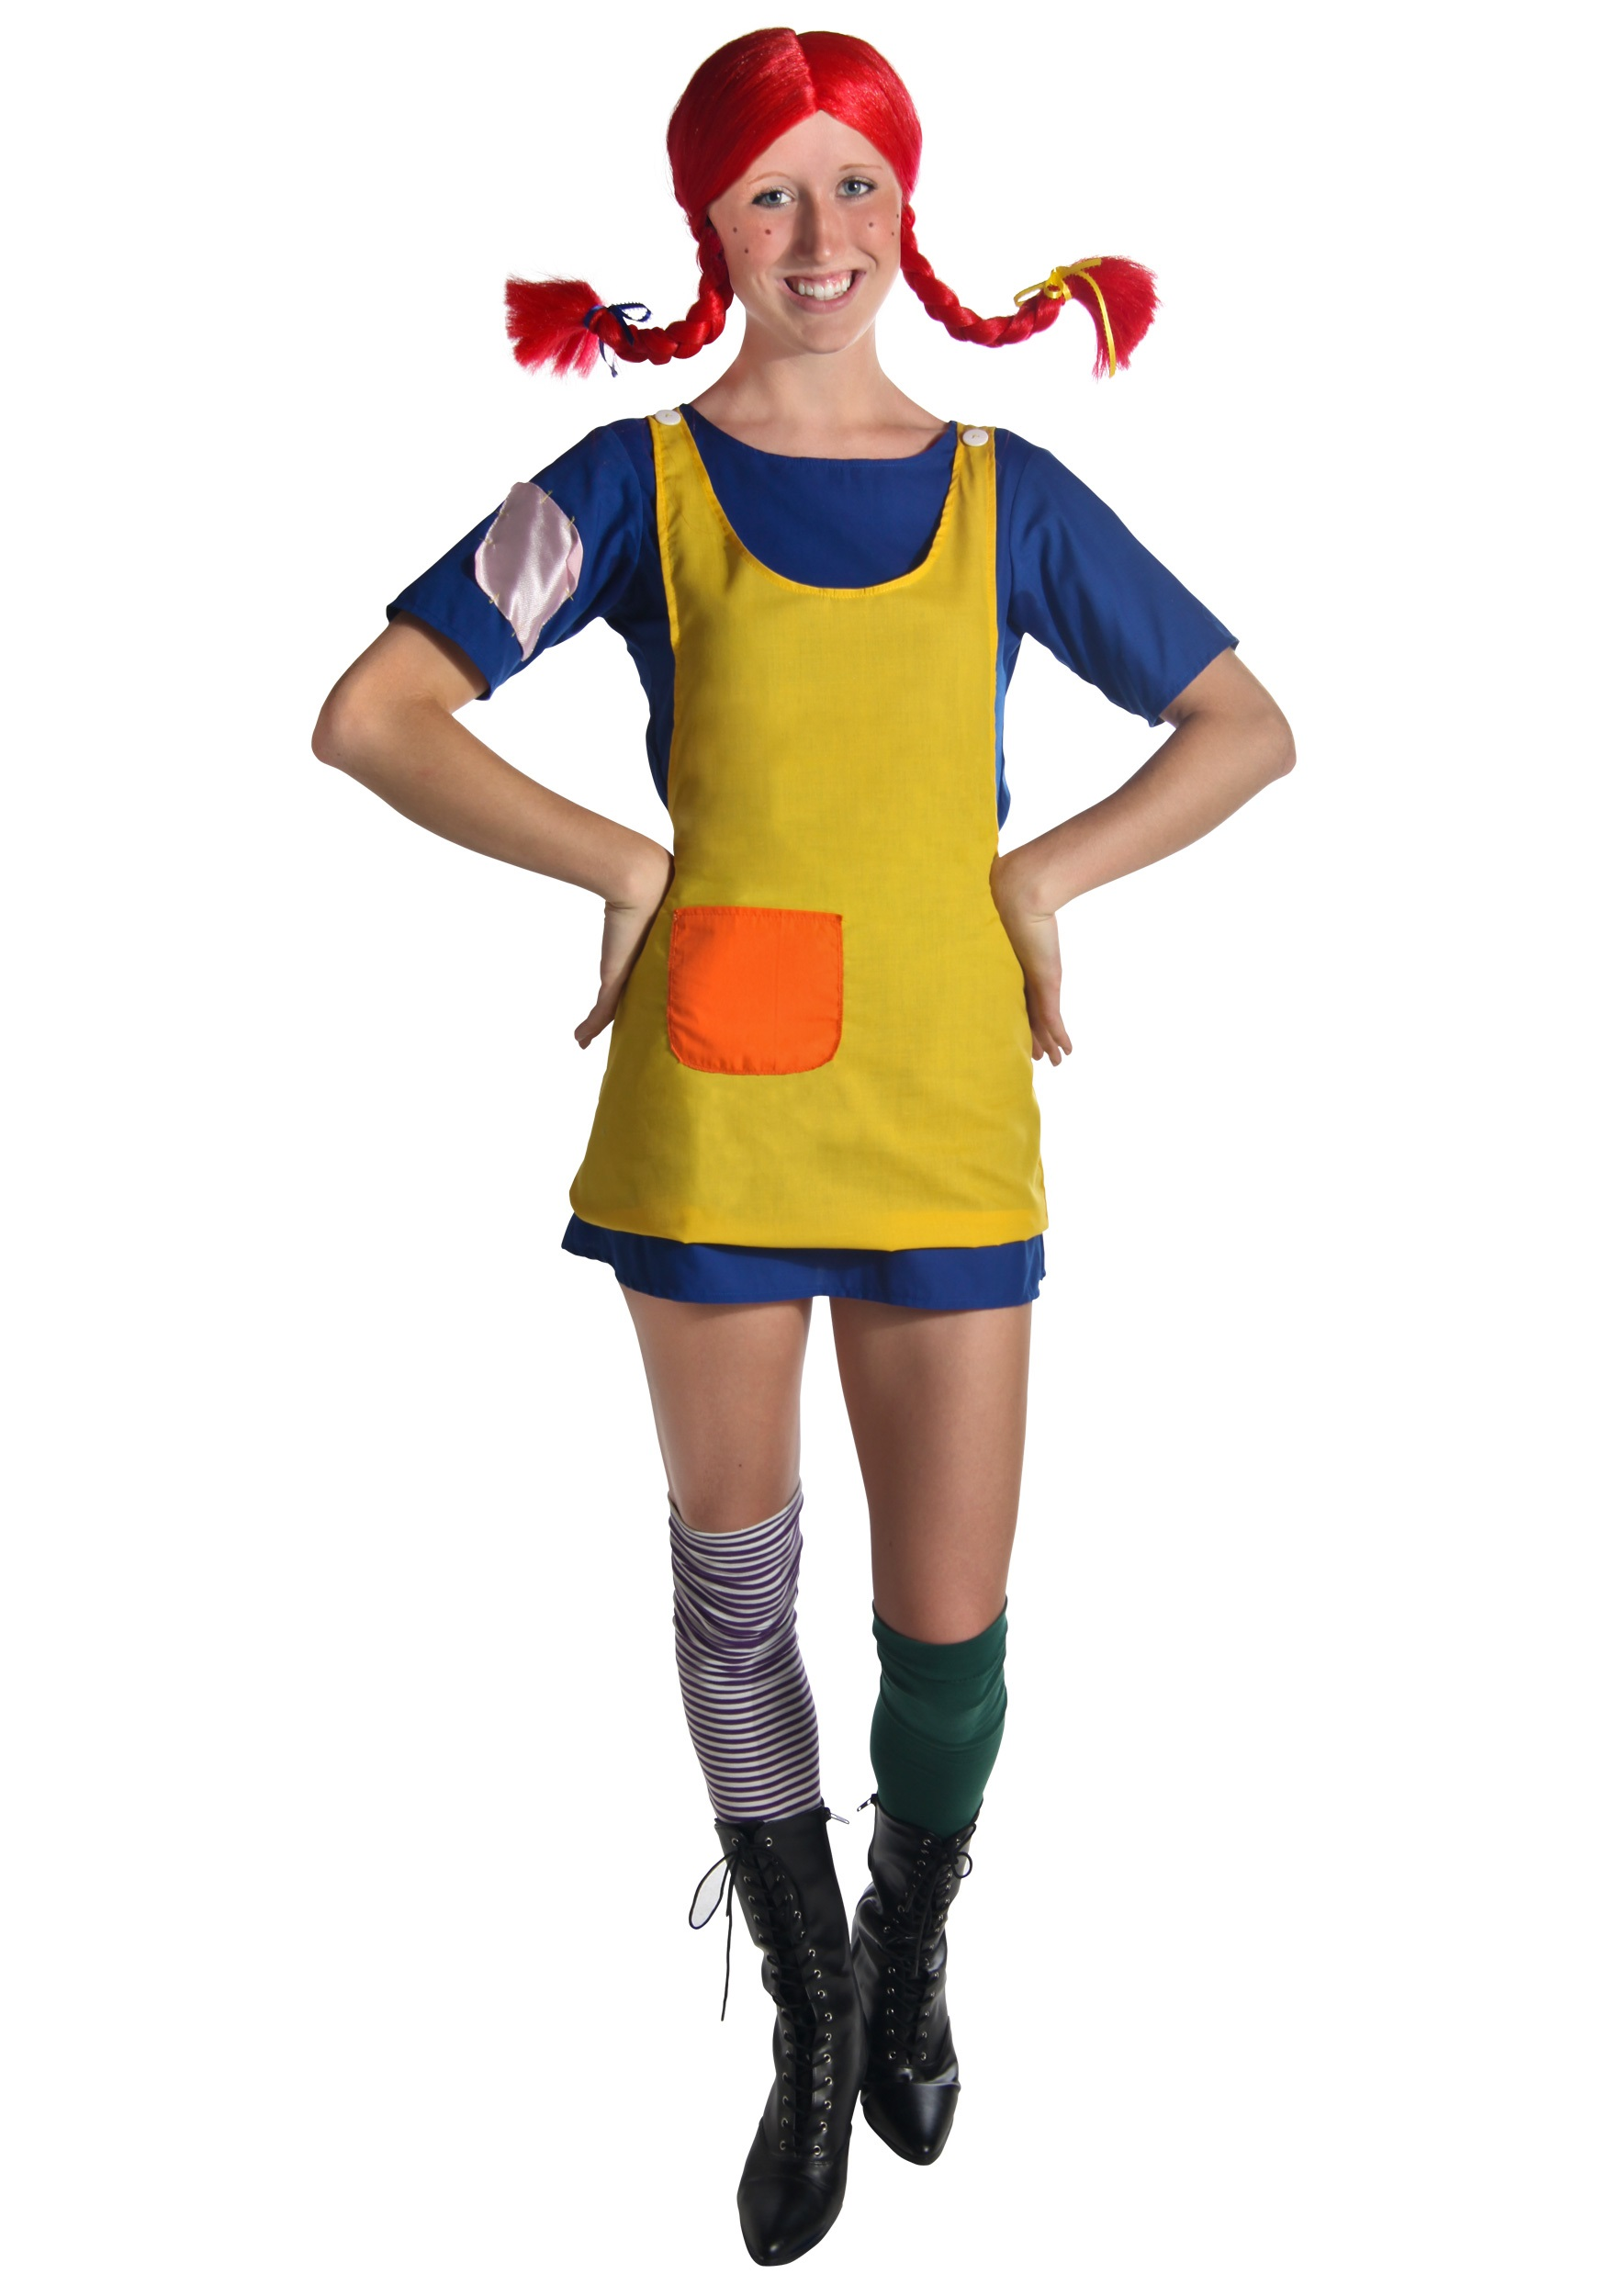 Unique At Home Halloween Costume Ideas For Adults Collection - Home ...